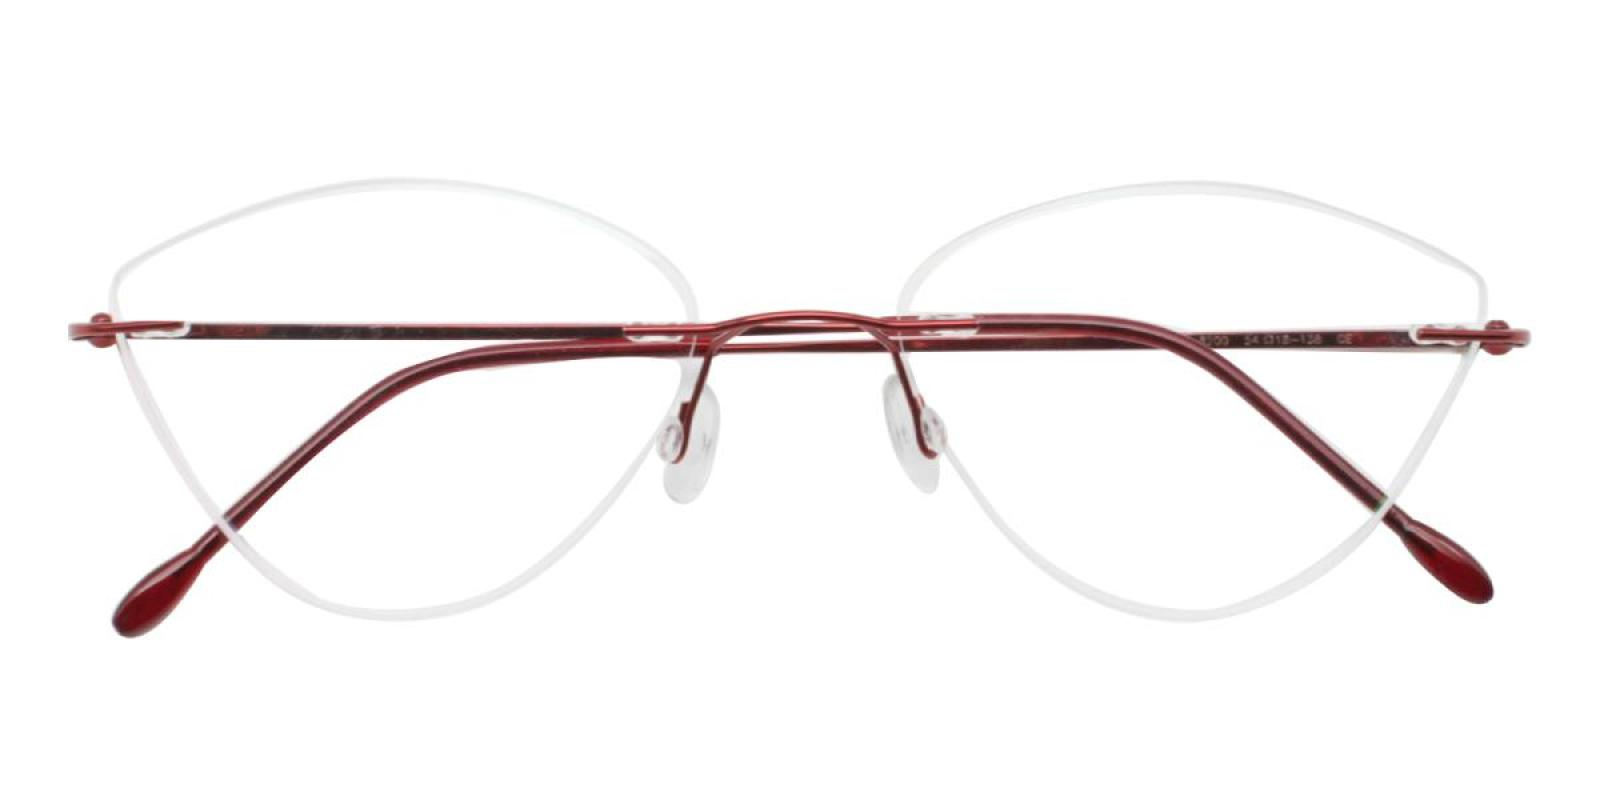 Huram-Red-Cat / Varieties-Metal-Eyeglasses-detail